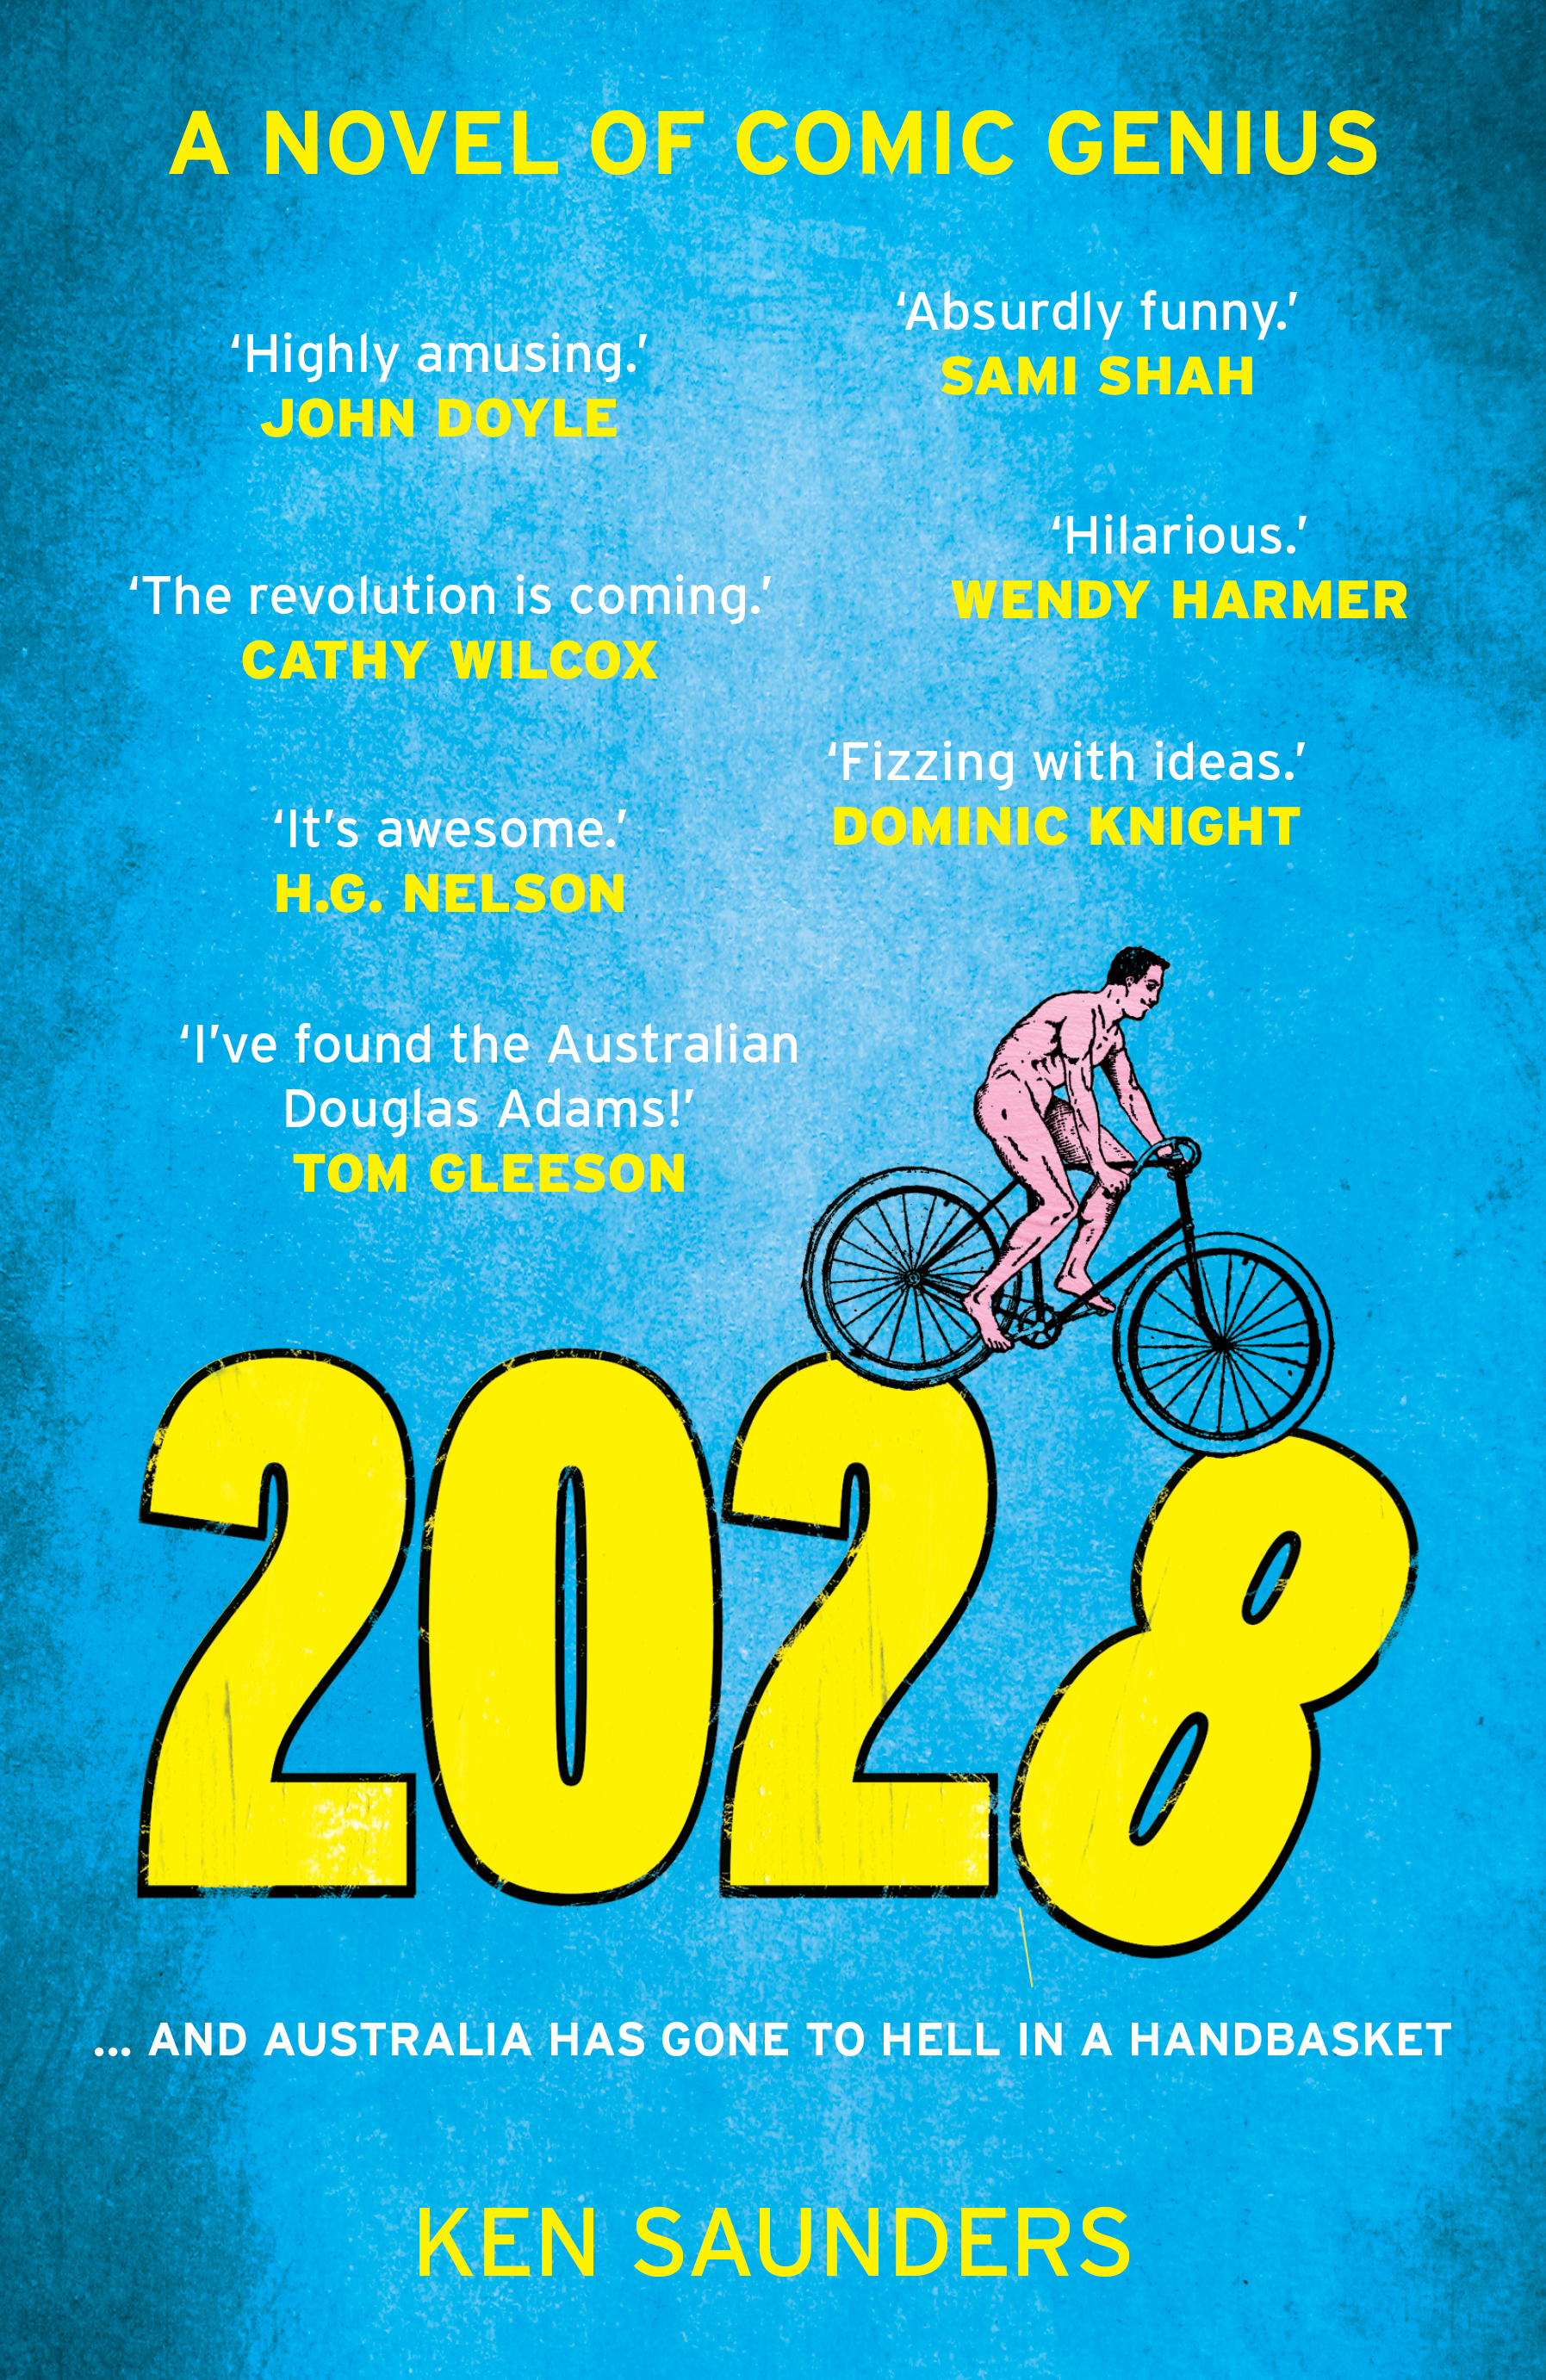 '2028' offers quite tame satire, despite rave reviews